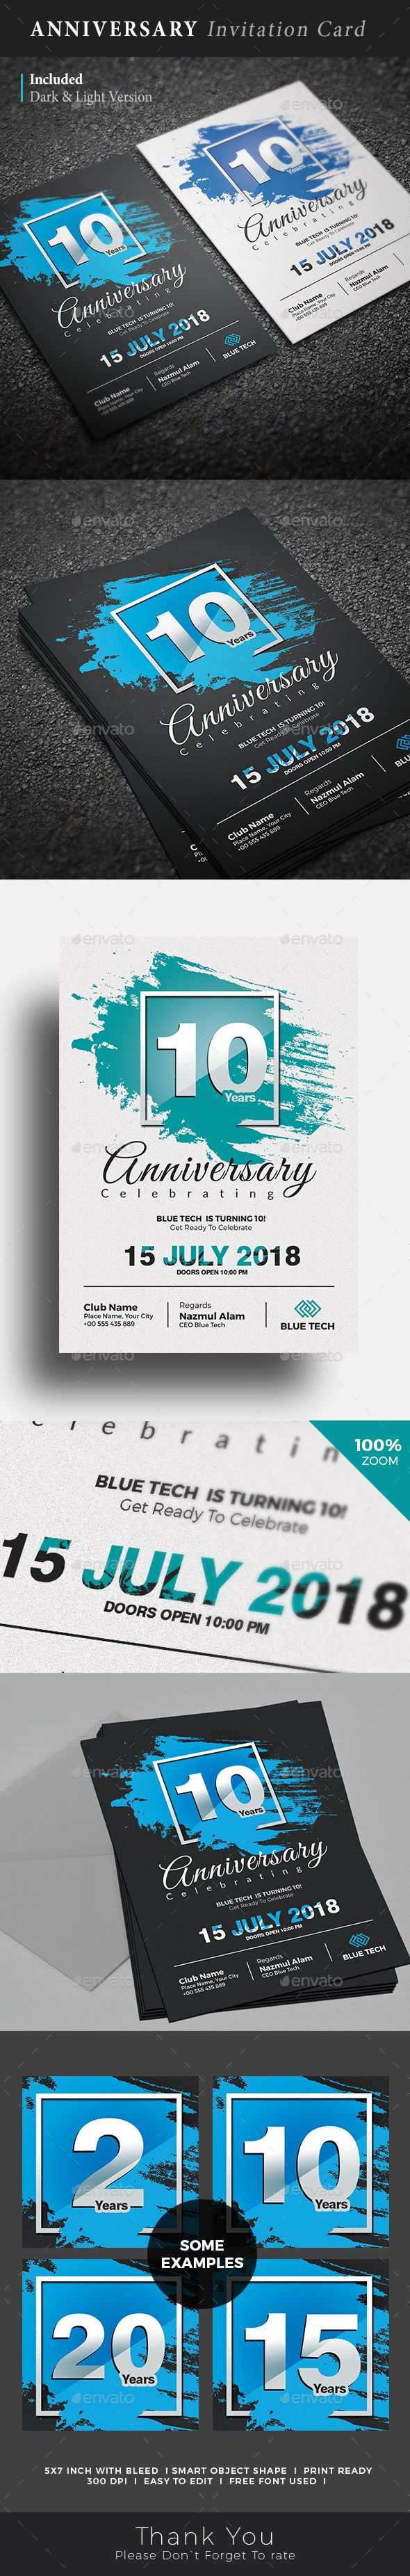 best ideas about corporate invitation corporate anniversary invitation company anniversary partytemplate